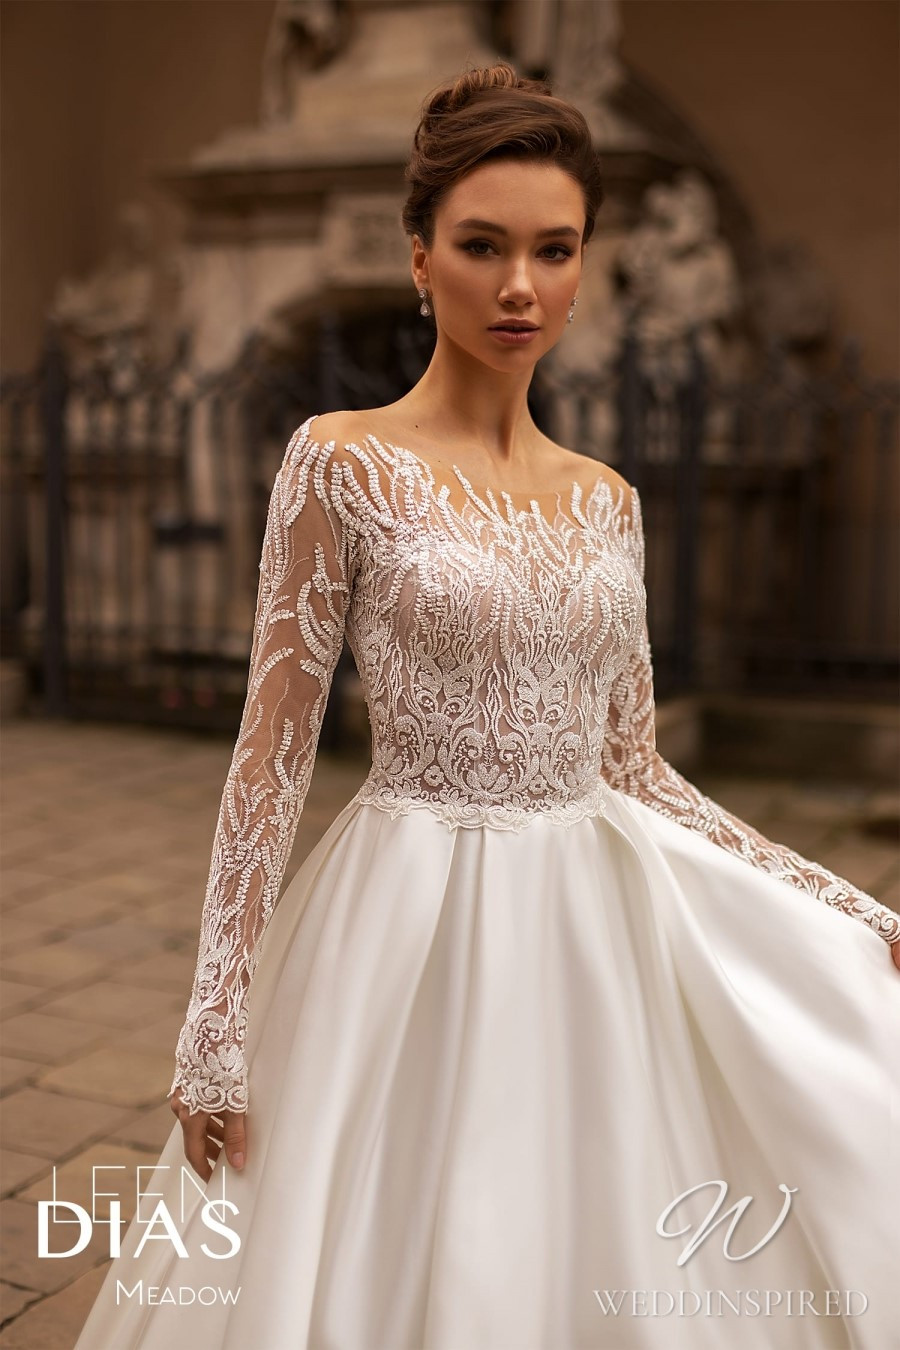 A Leen Dias 2021 off the shoulder lace and satin A-line wedding dress